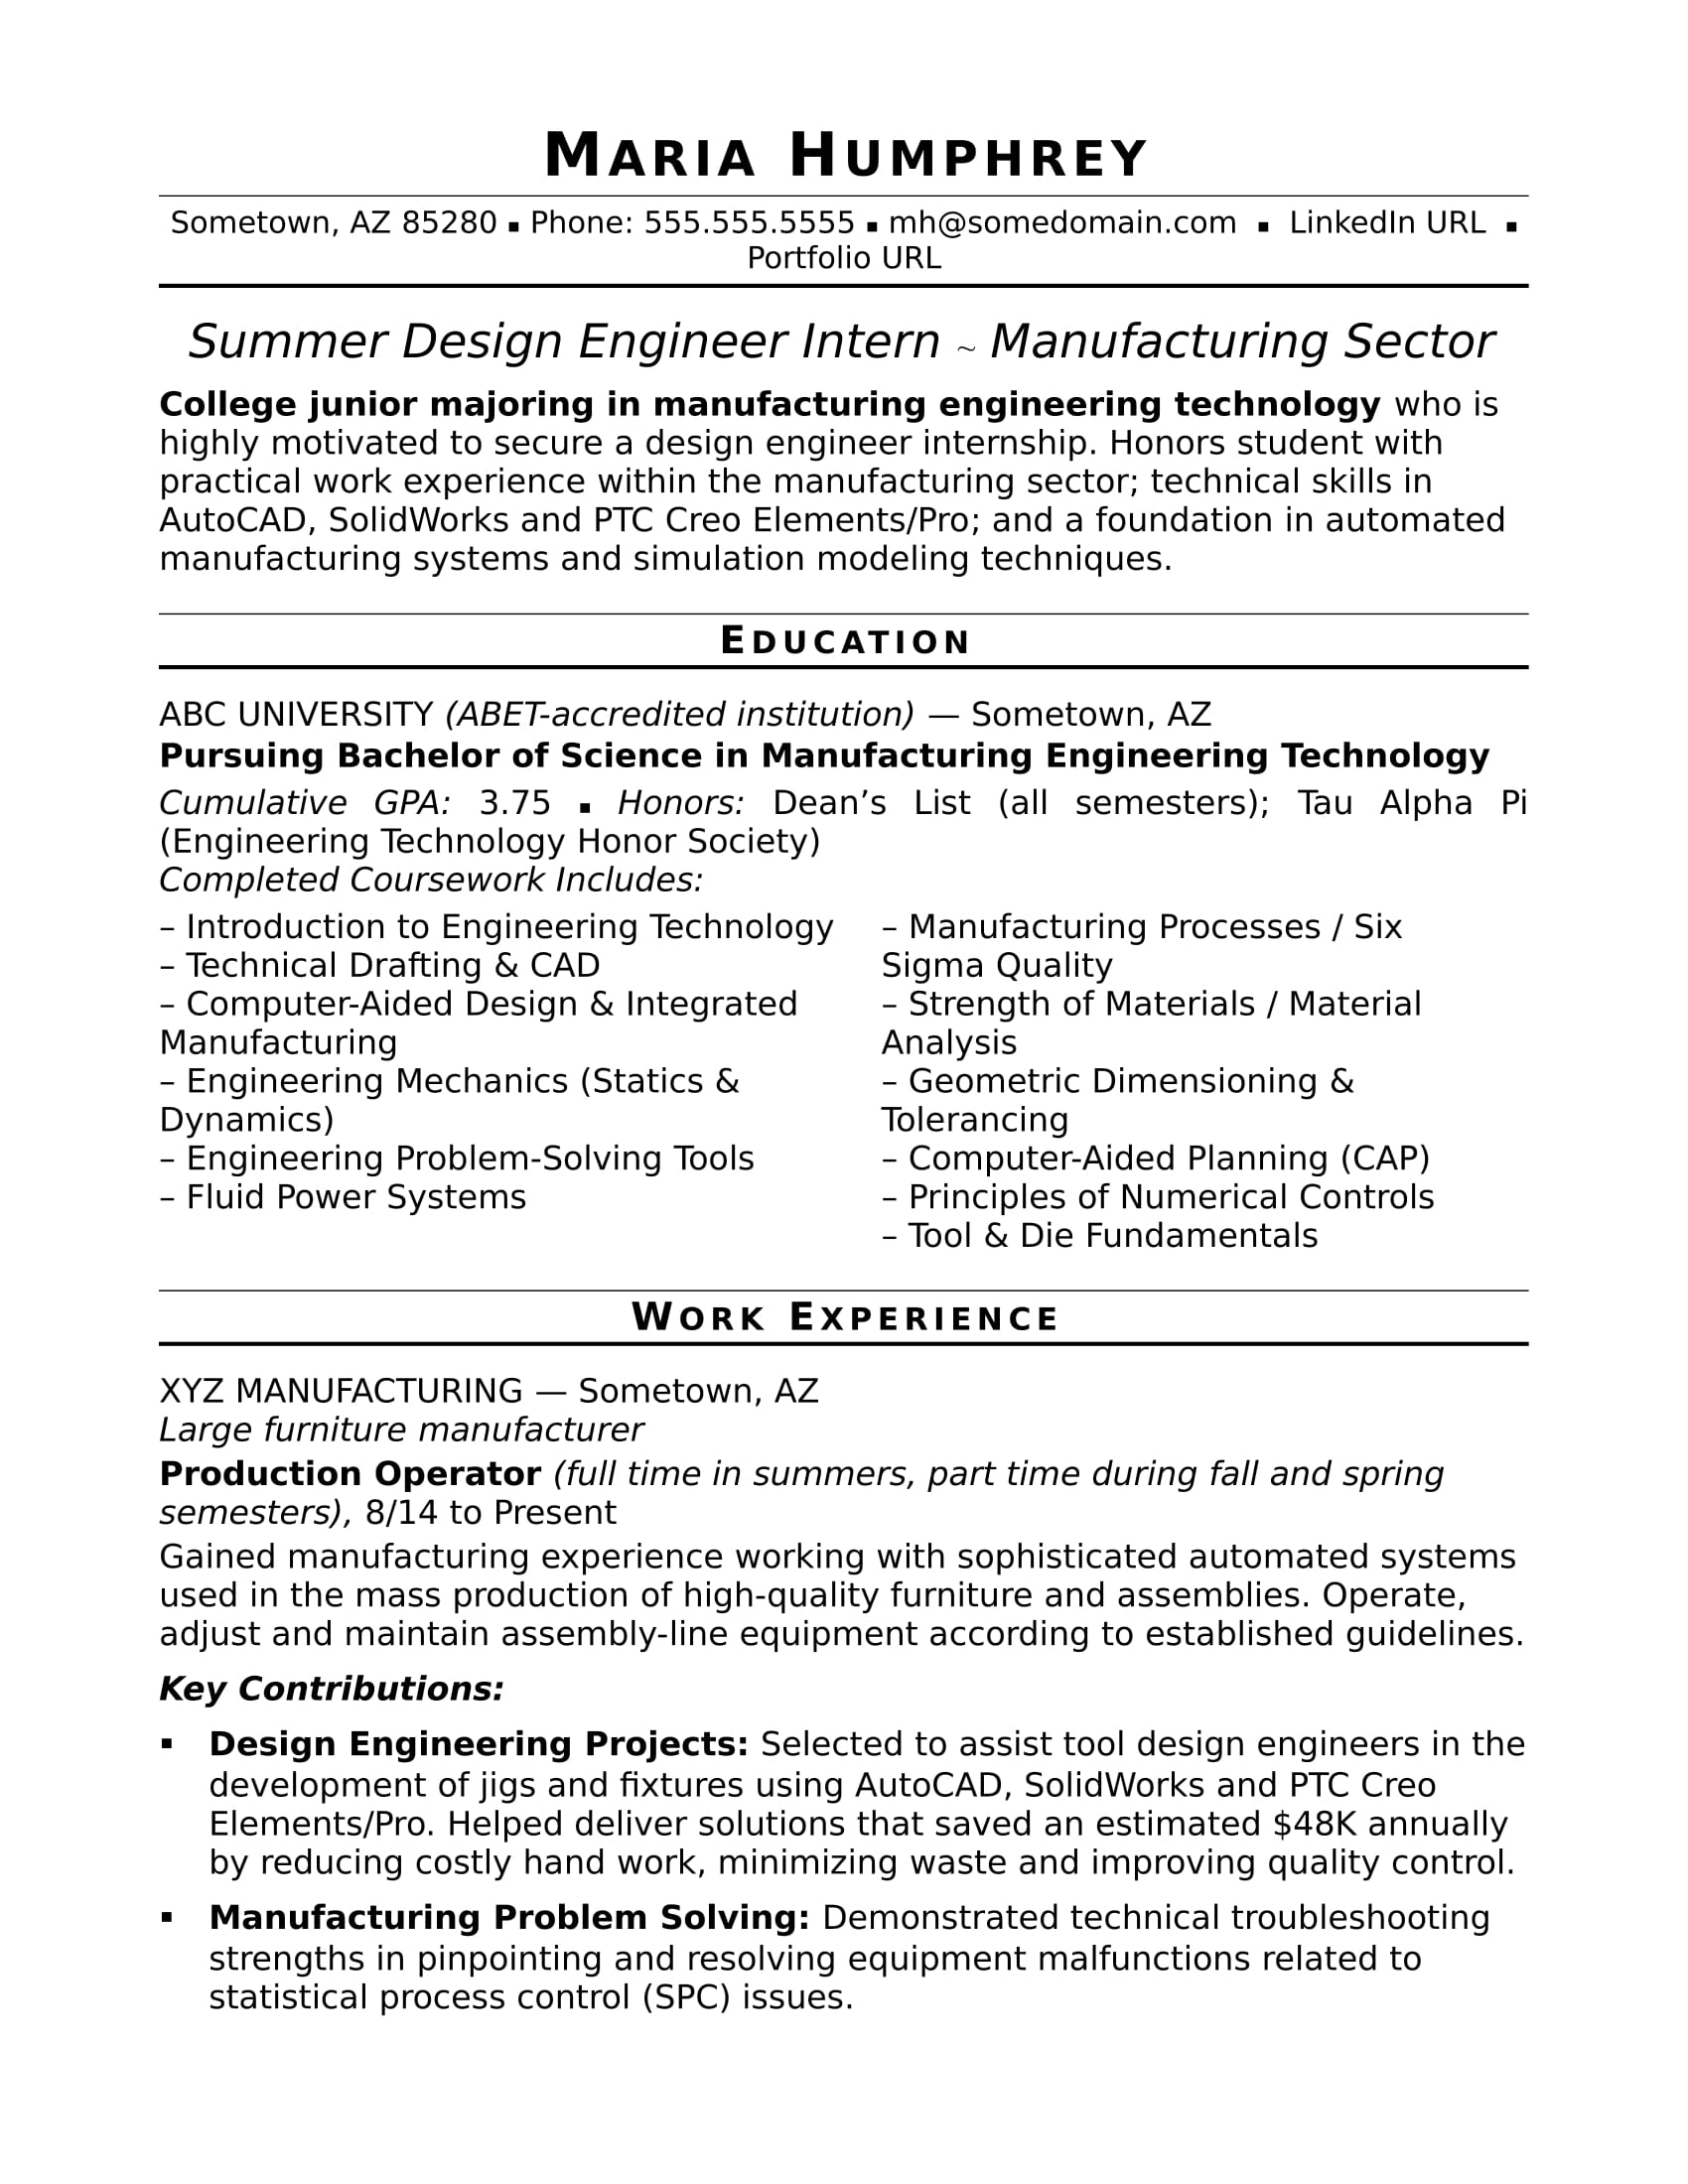 sample resume for an entry level design engineer monster tool example payment poster job Resume Tool Design Engineer Resume Example